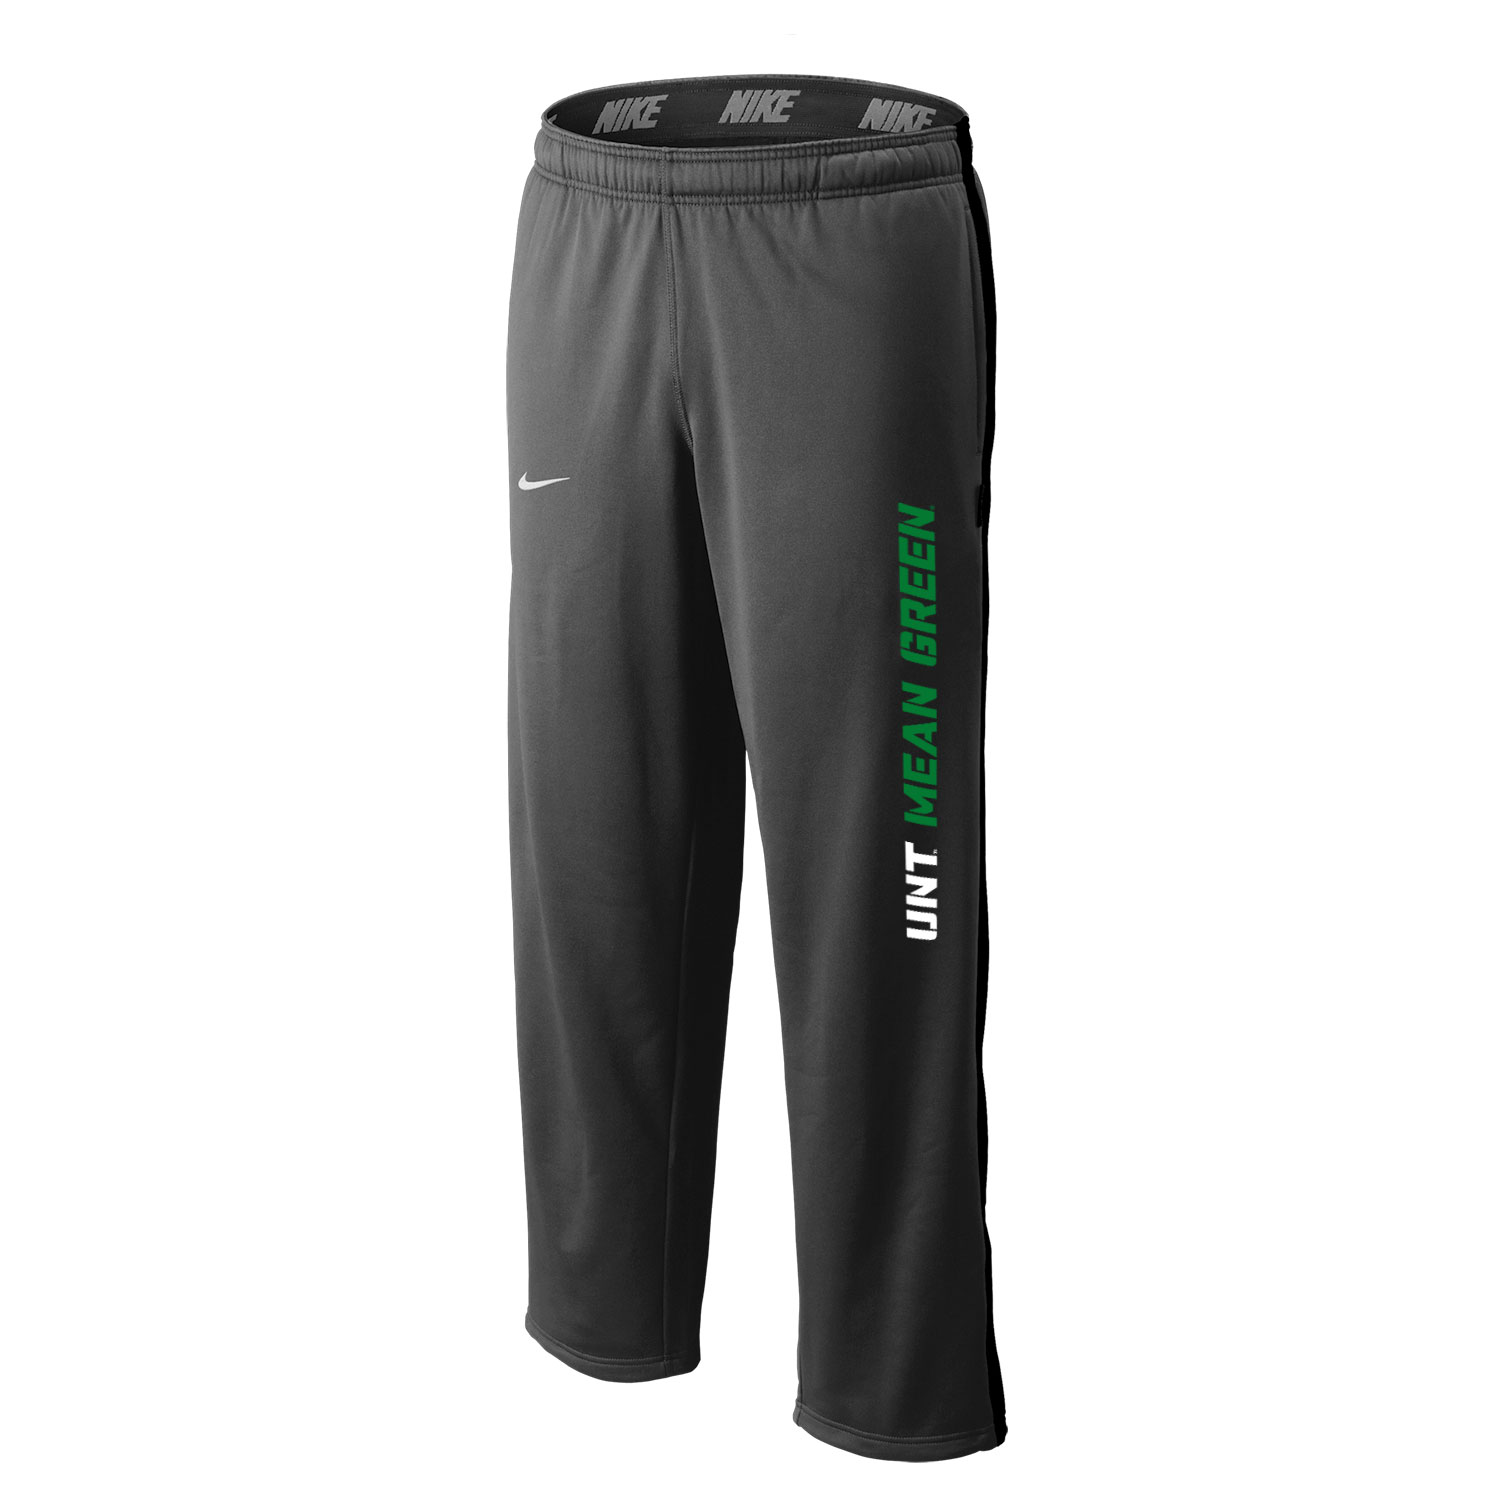 NIKE MEN'S WARM-UP PANT